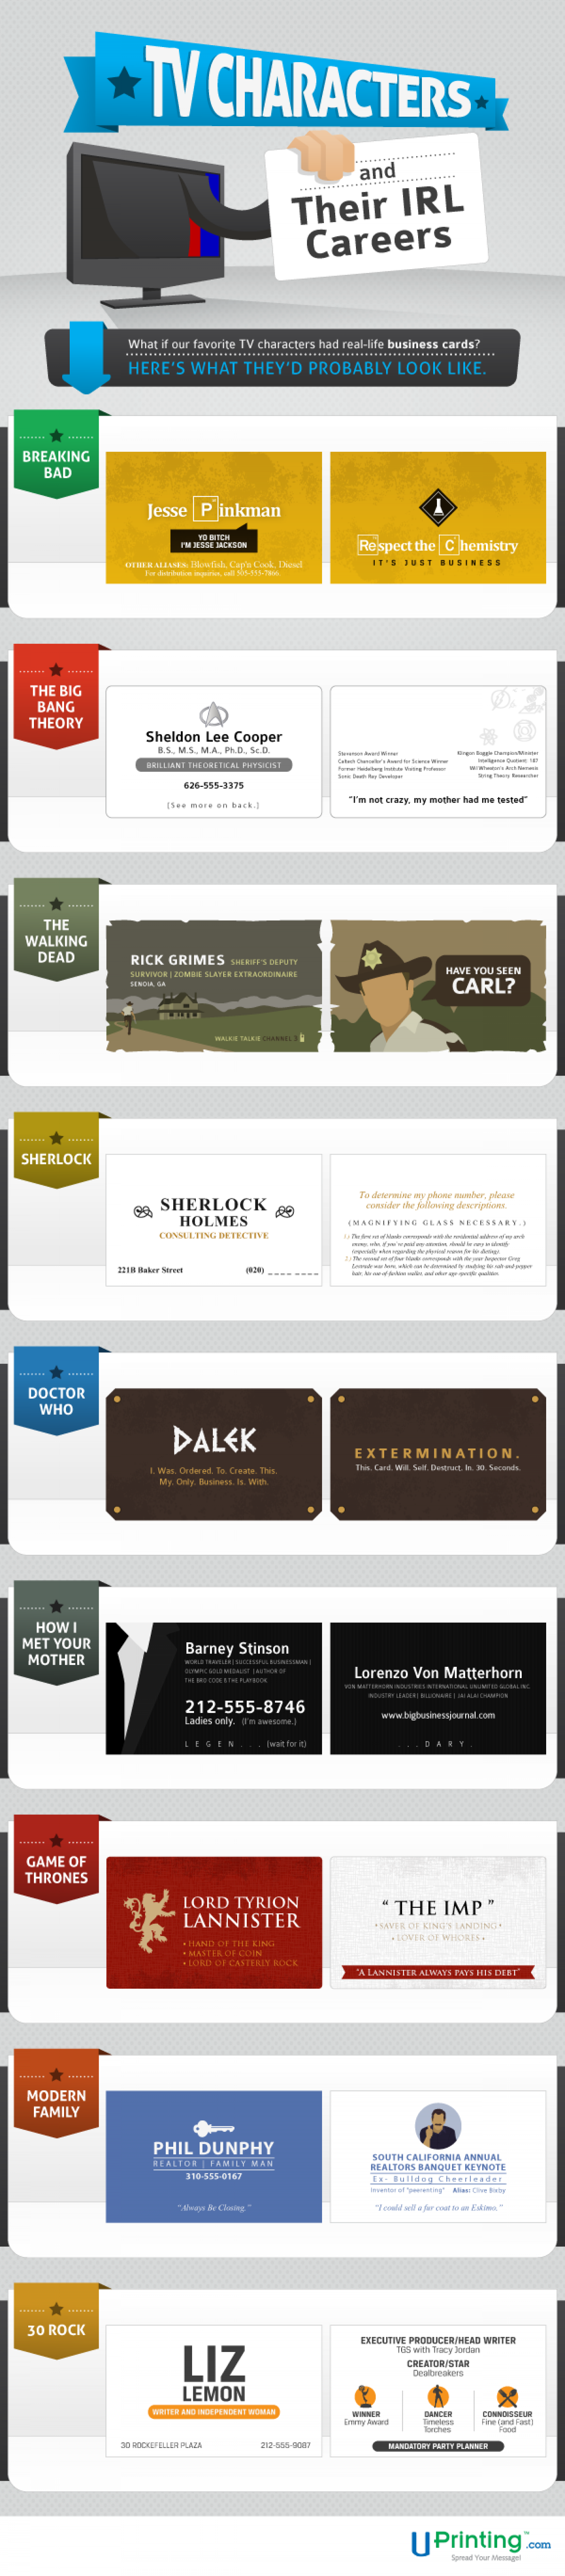 Your Favorite TV Characters and Their Business Cards Infographic